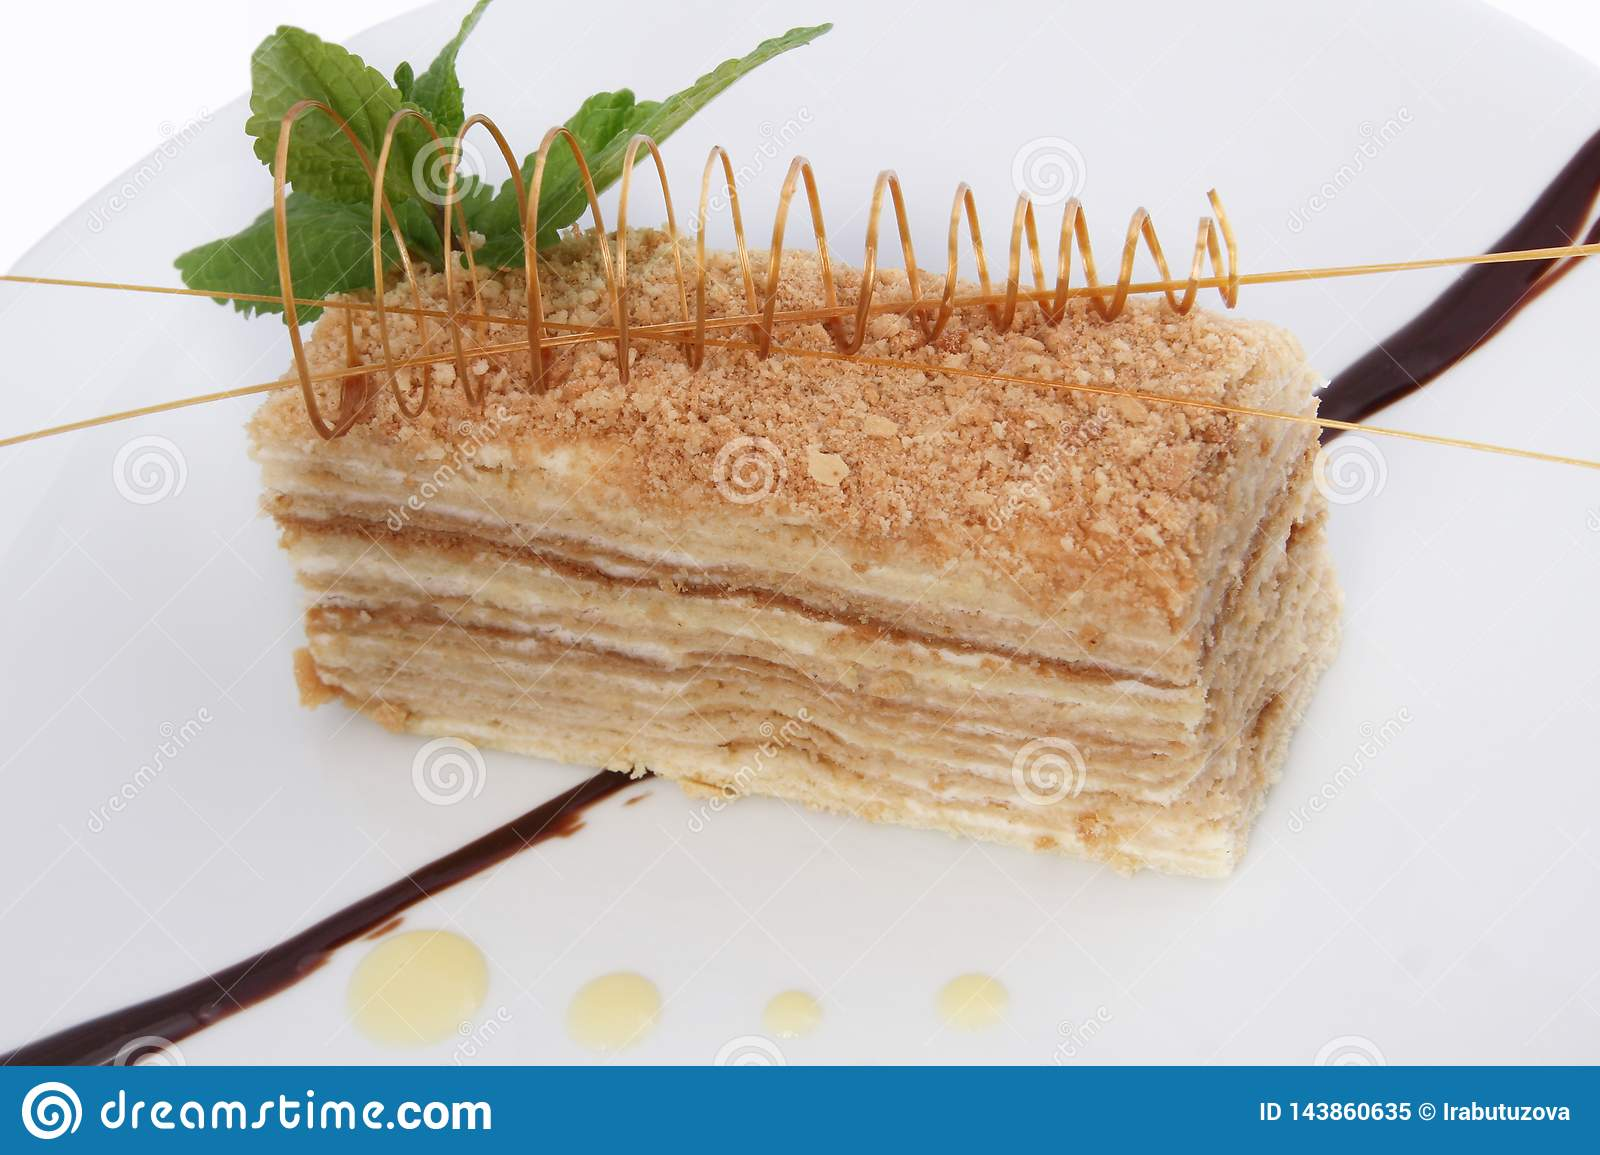 Portion of sweet classic layered cake of Napoleon on a light background